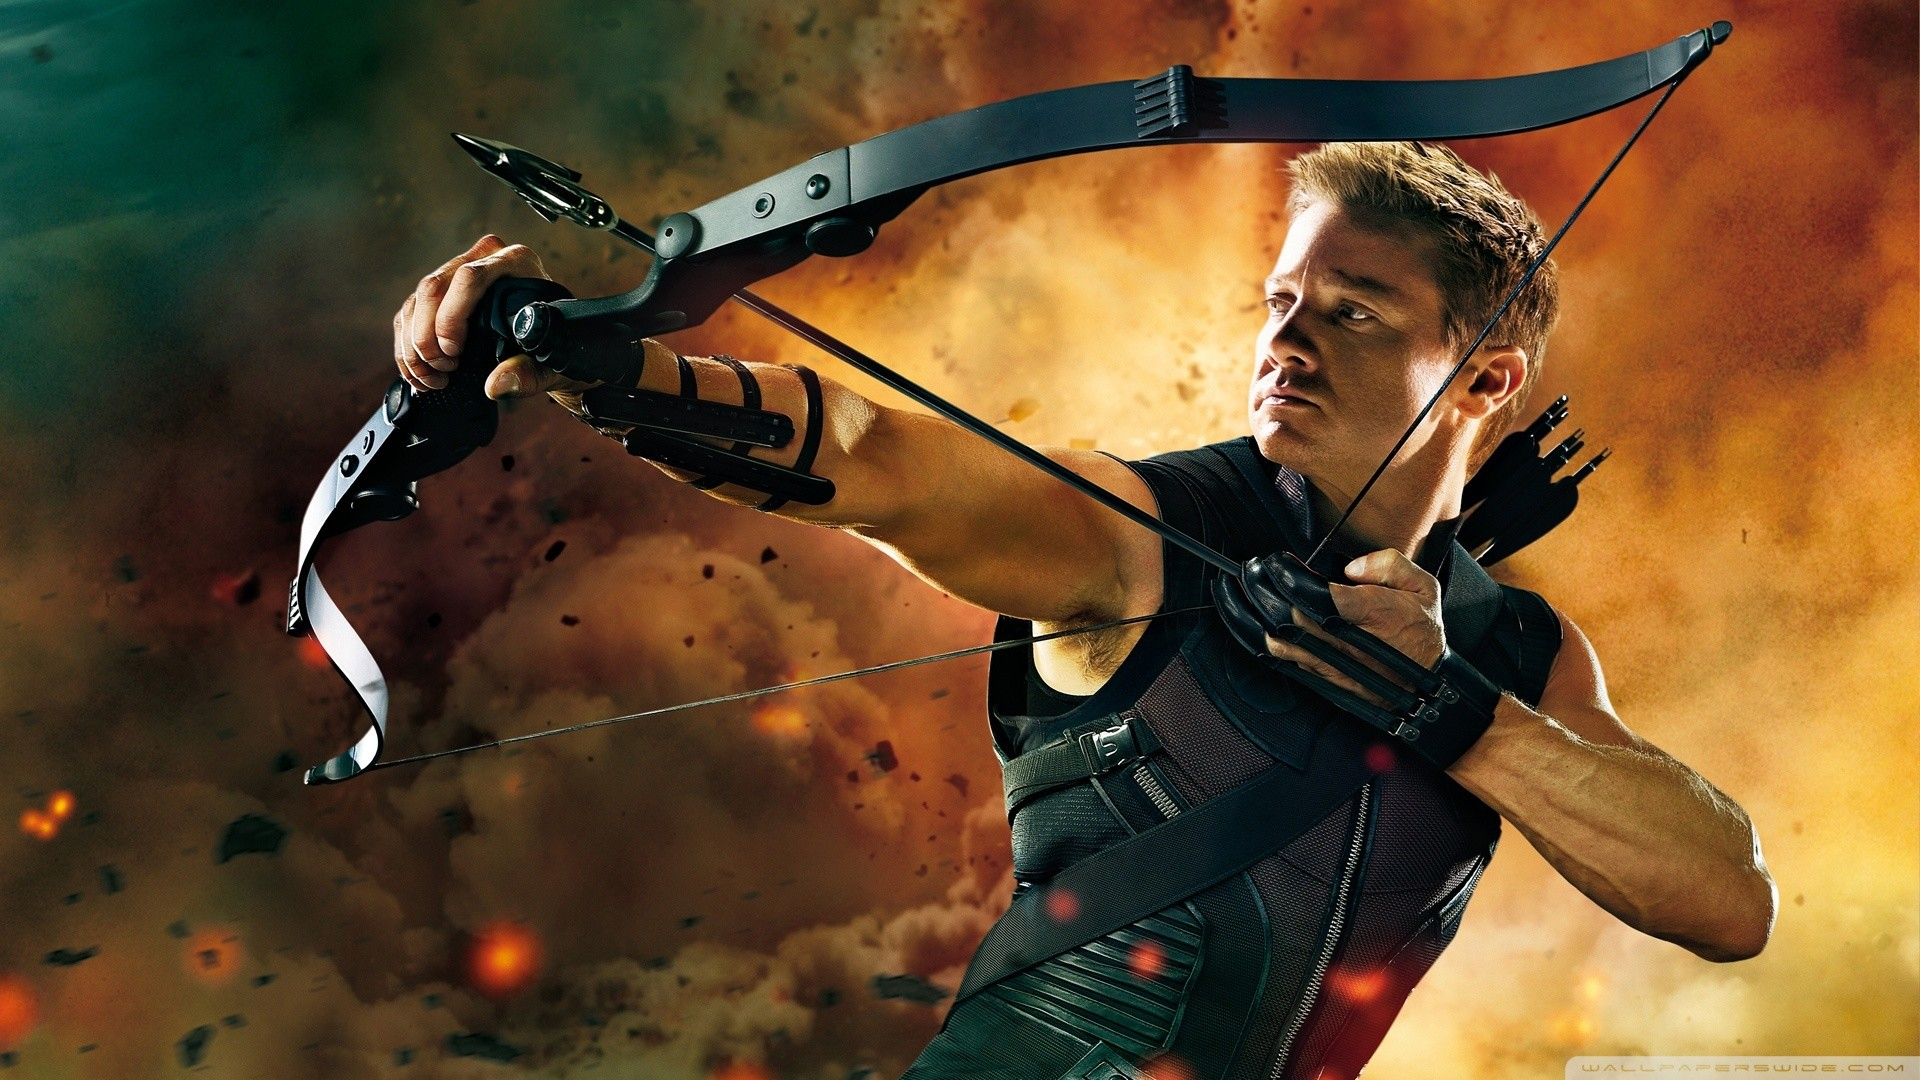 1920x1080 Marvel-The-Avengers-Movie-2012-HD-Wallpaper-Hawkeye-